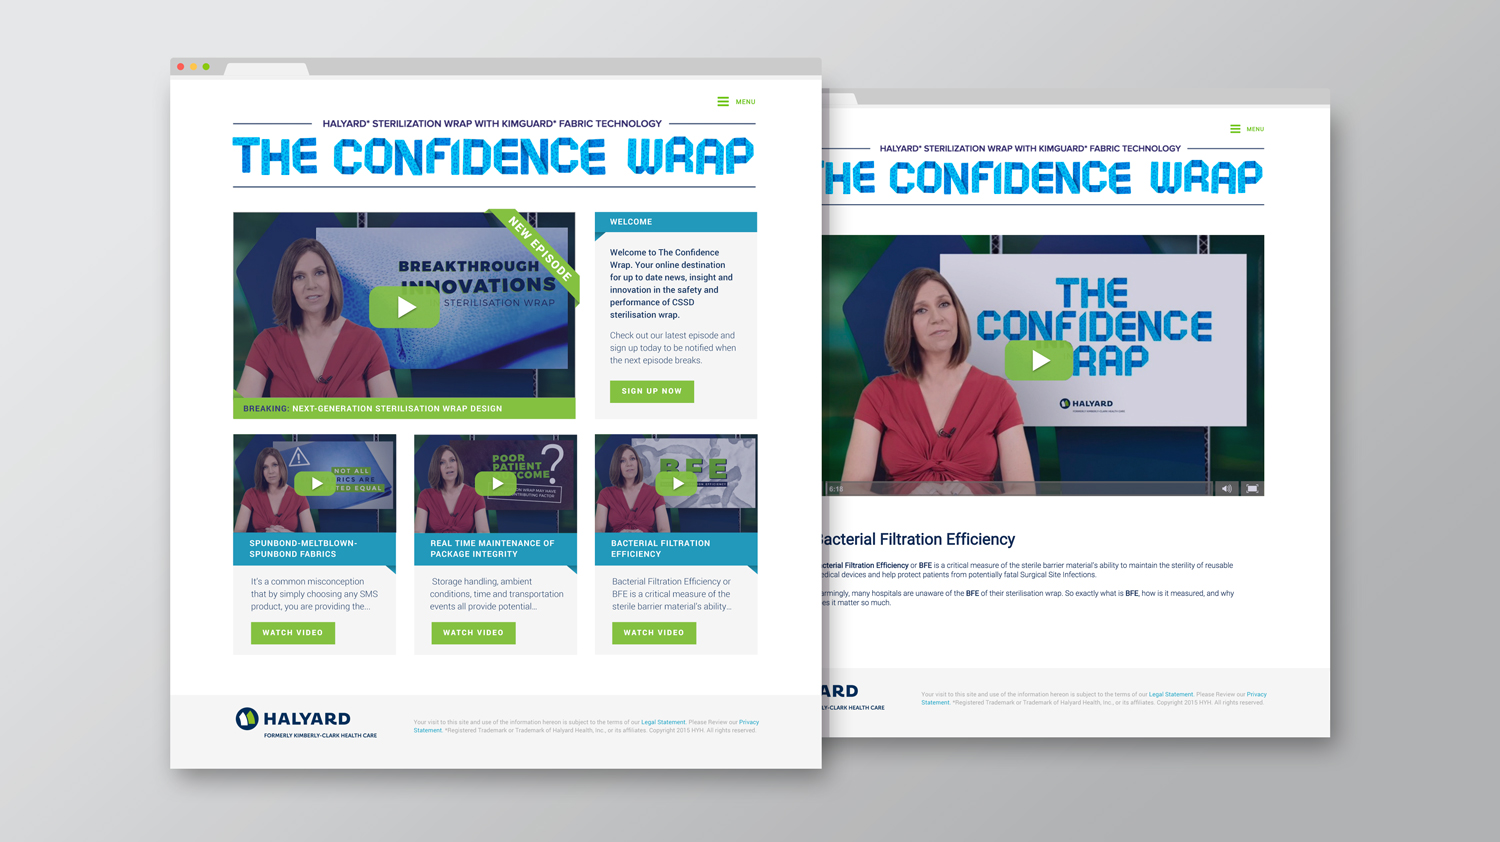 The Confidence Wrap website